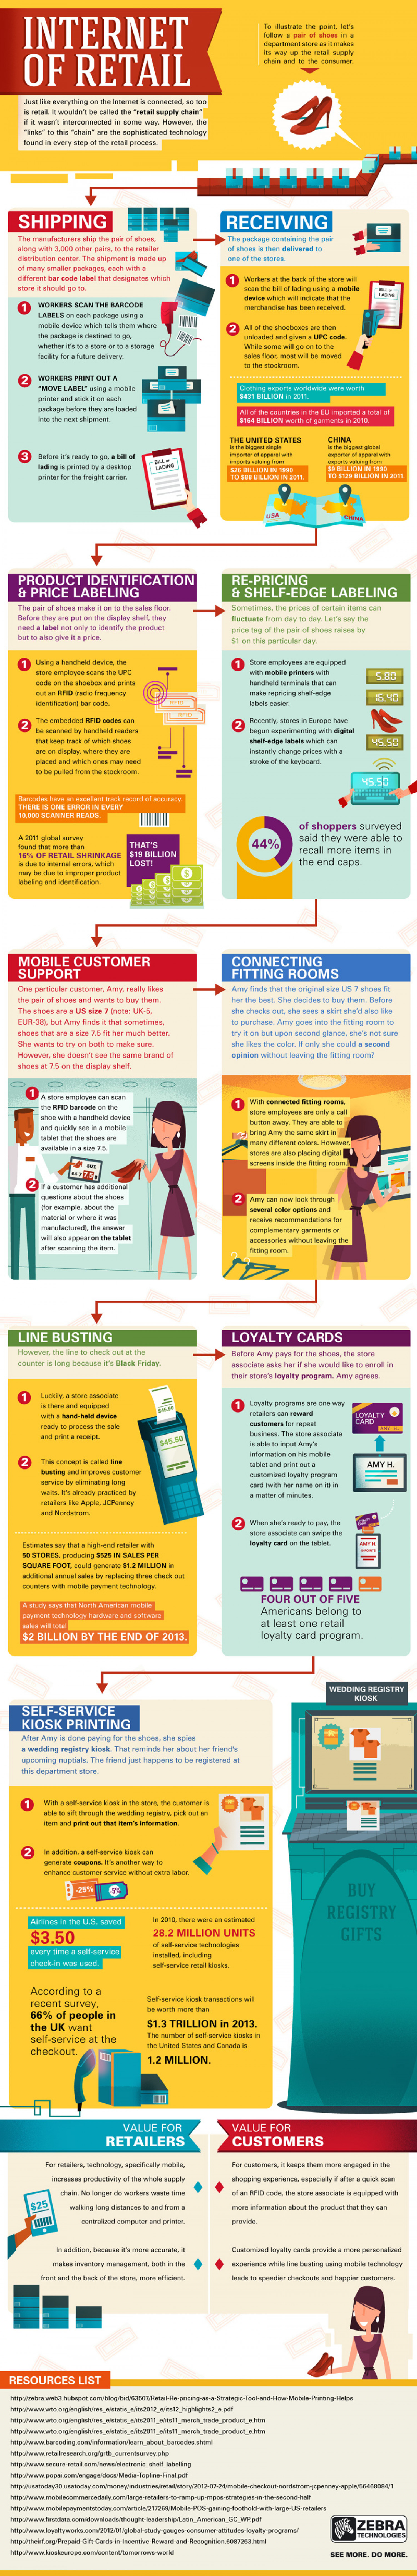 Internet of Retail Infographic